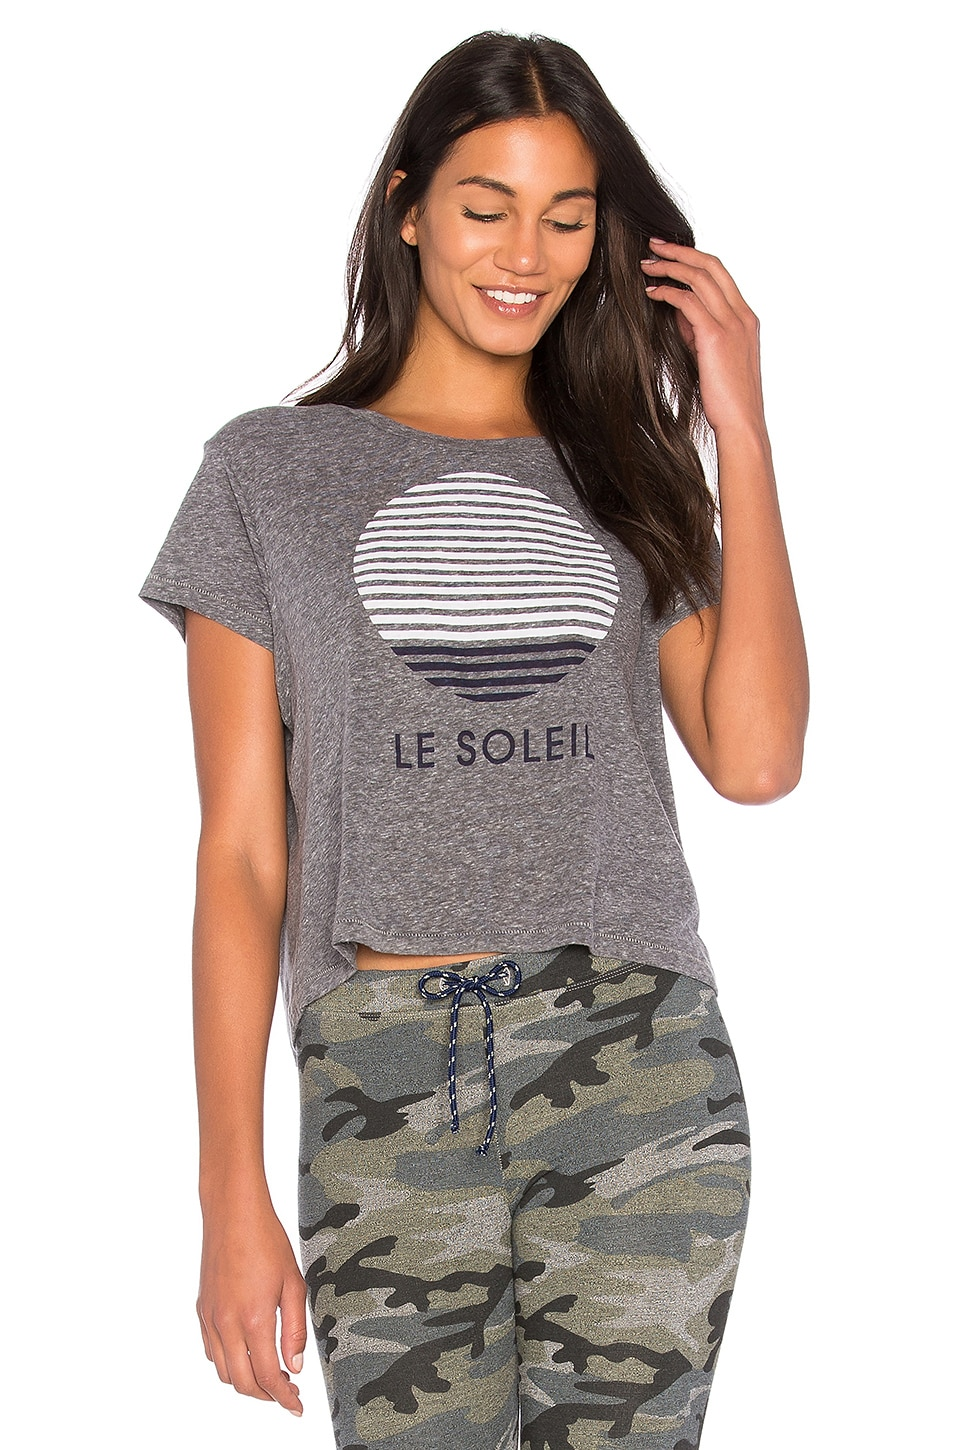 Le Soleil Cropped Tee